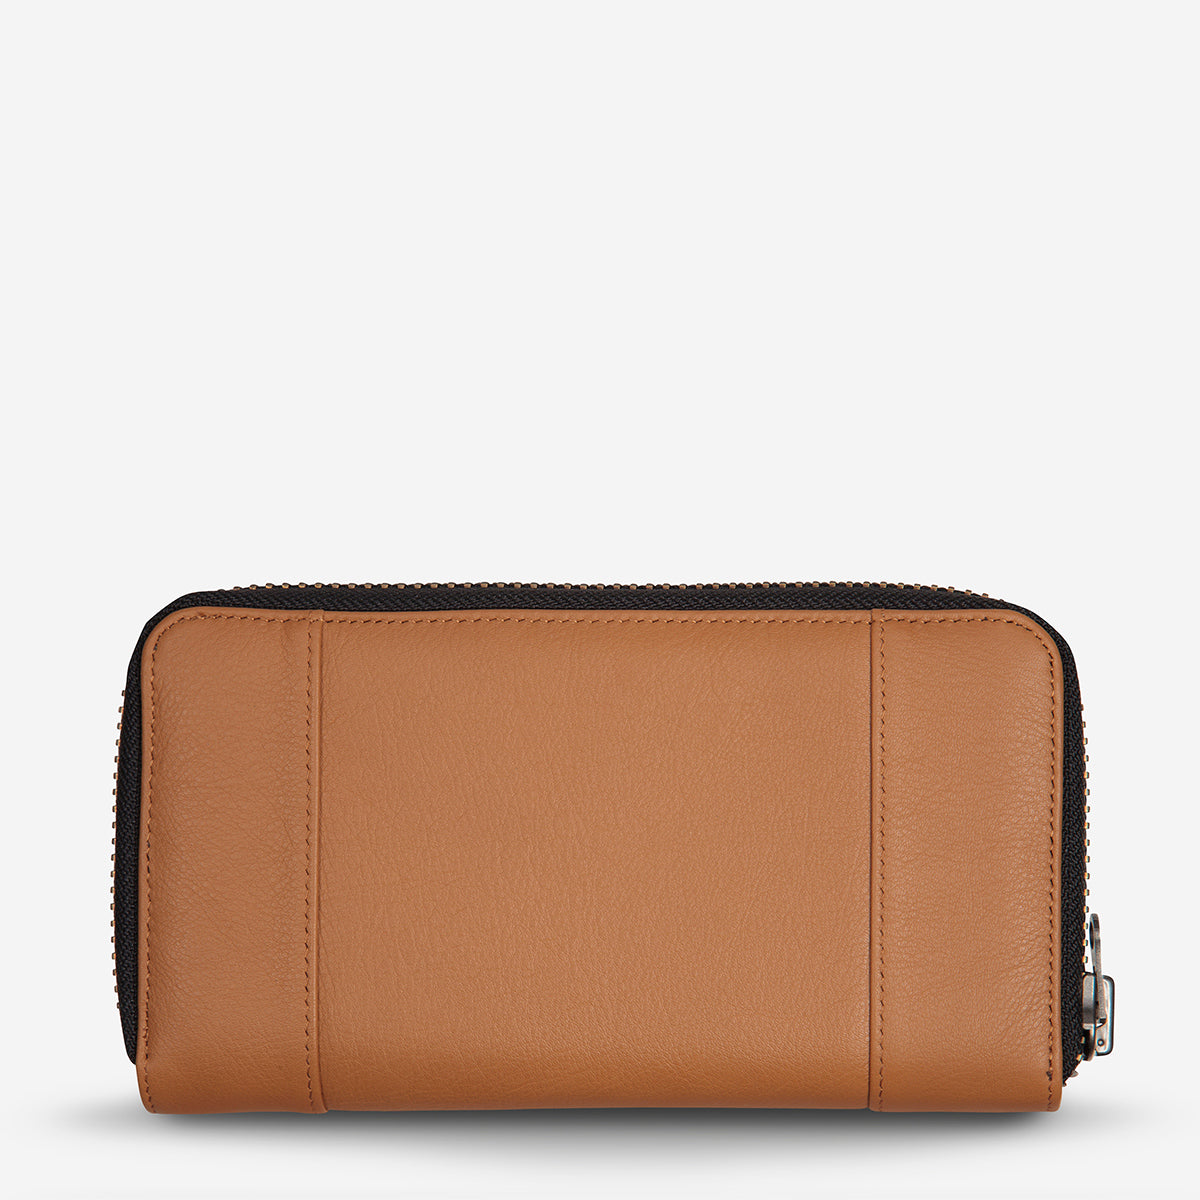 Status Anxiety State Of Flux Leather Wallet - Tan